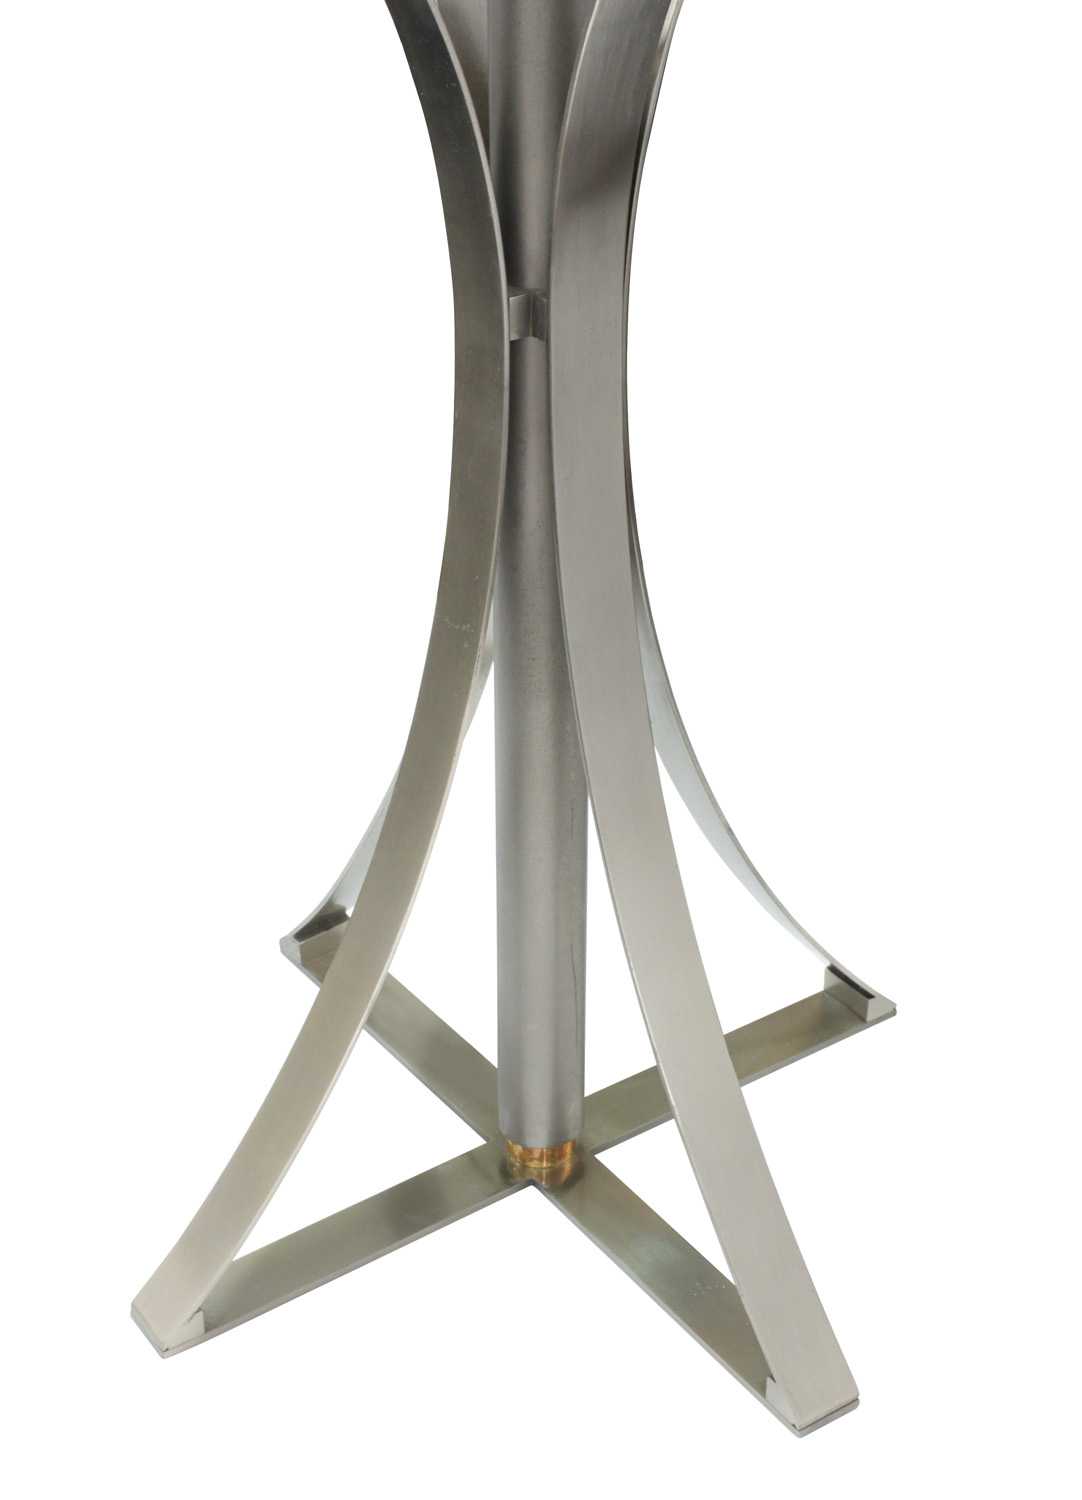 Crespi 500 lrg steel+white perspex tablelamp223 detail2 hires.jpg